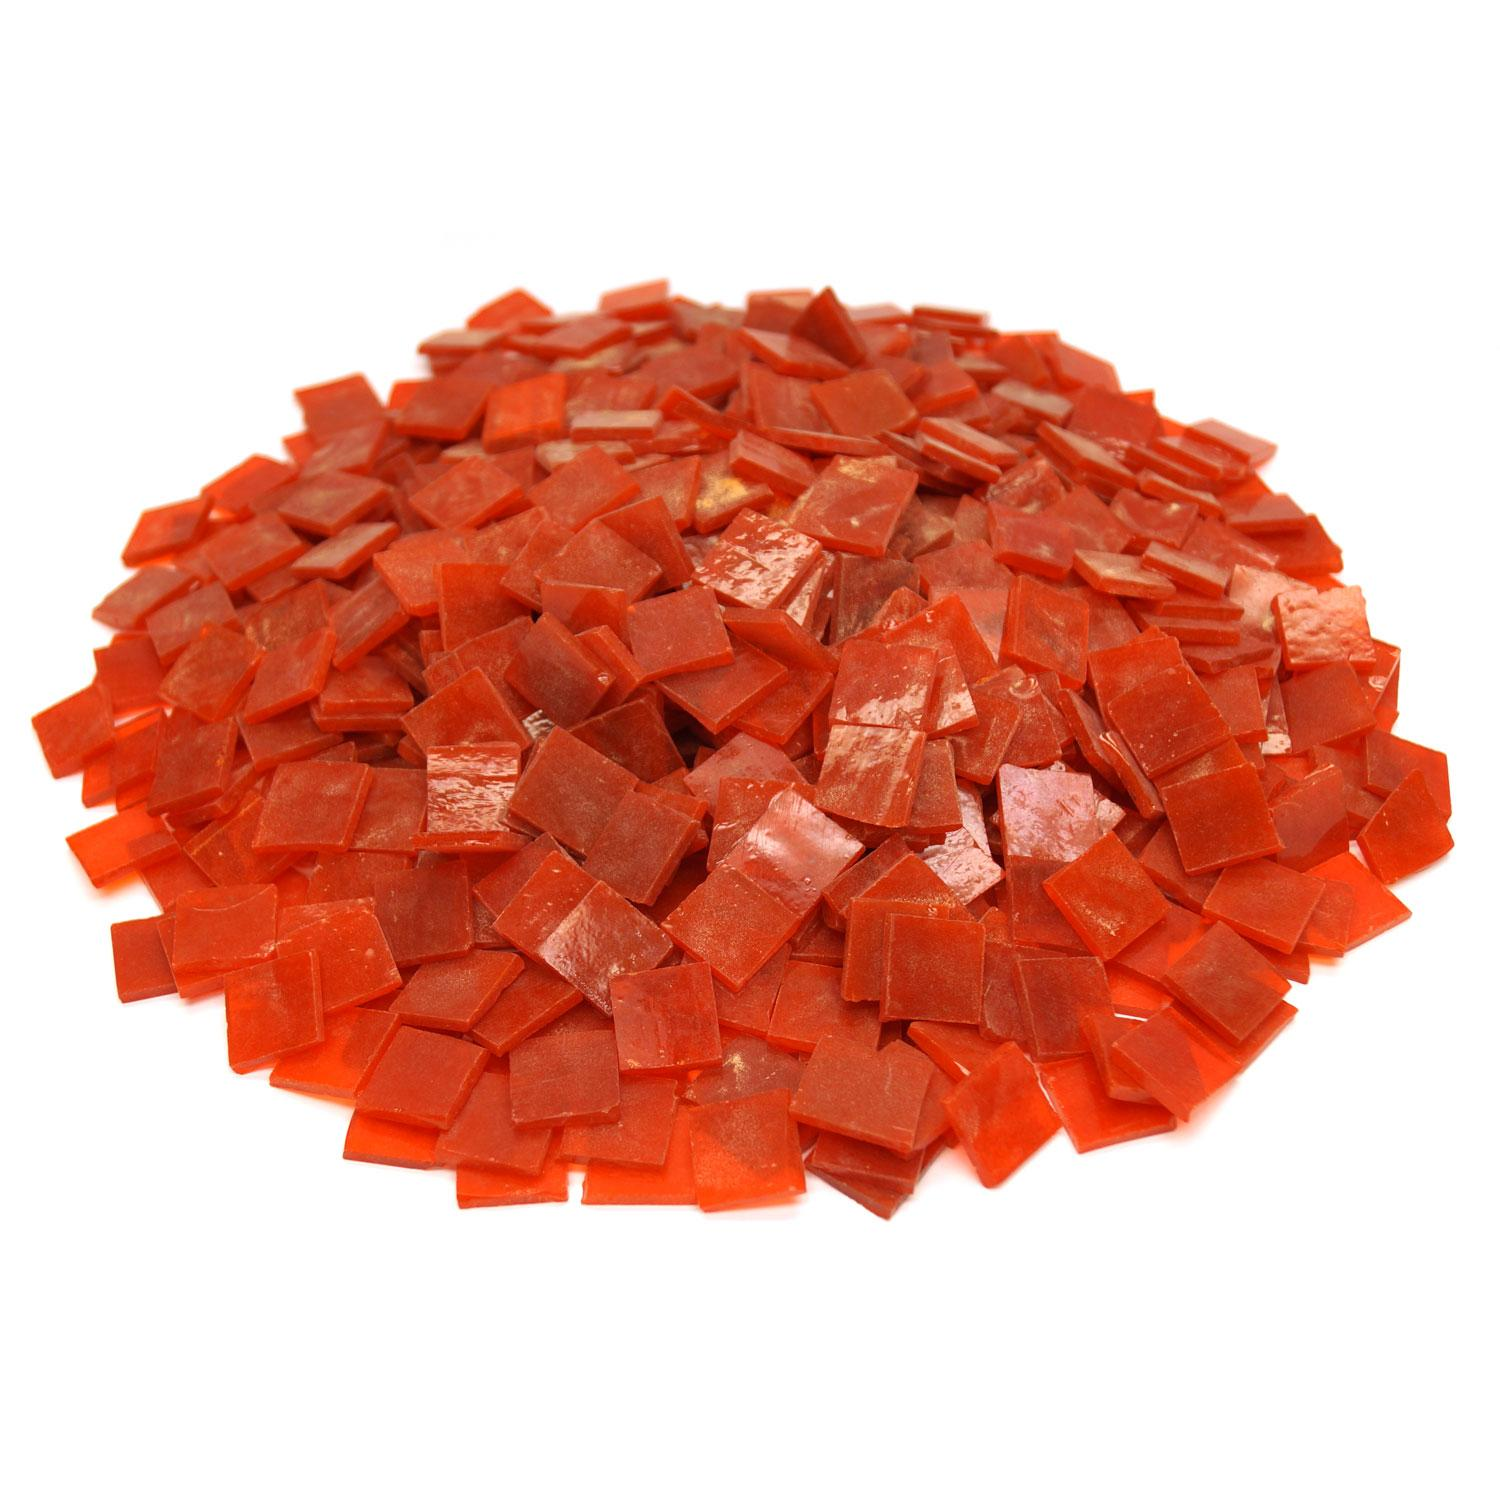 3/4 Orange Opaque Stained Glass Chips - 700 Pieces